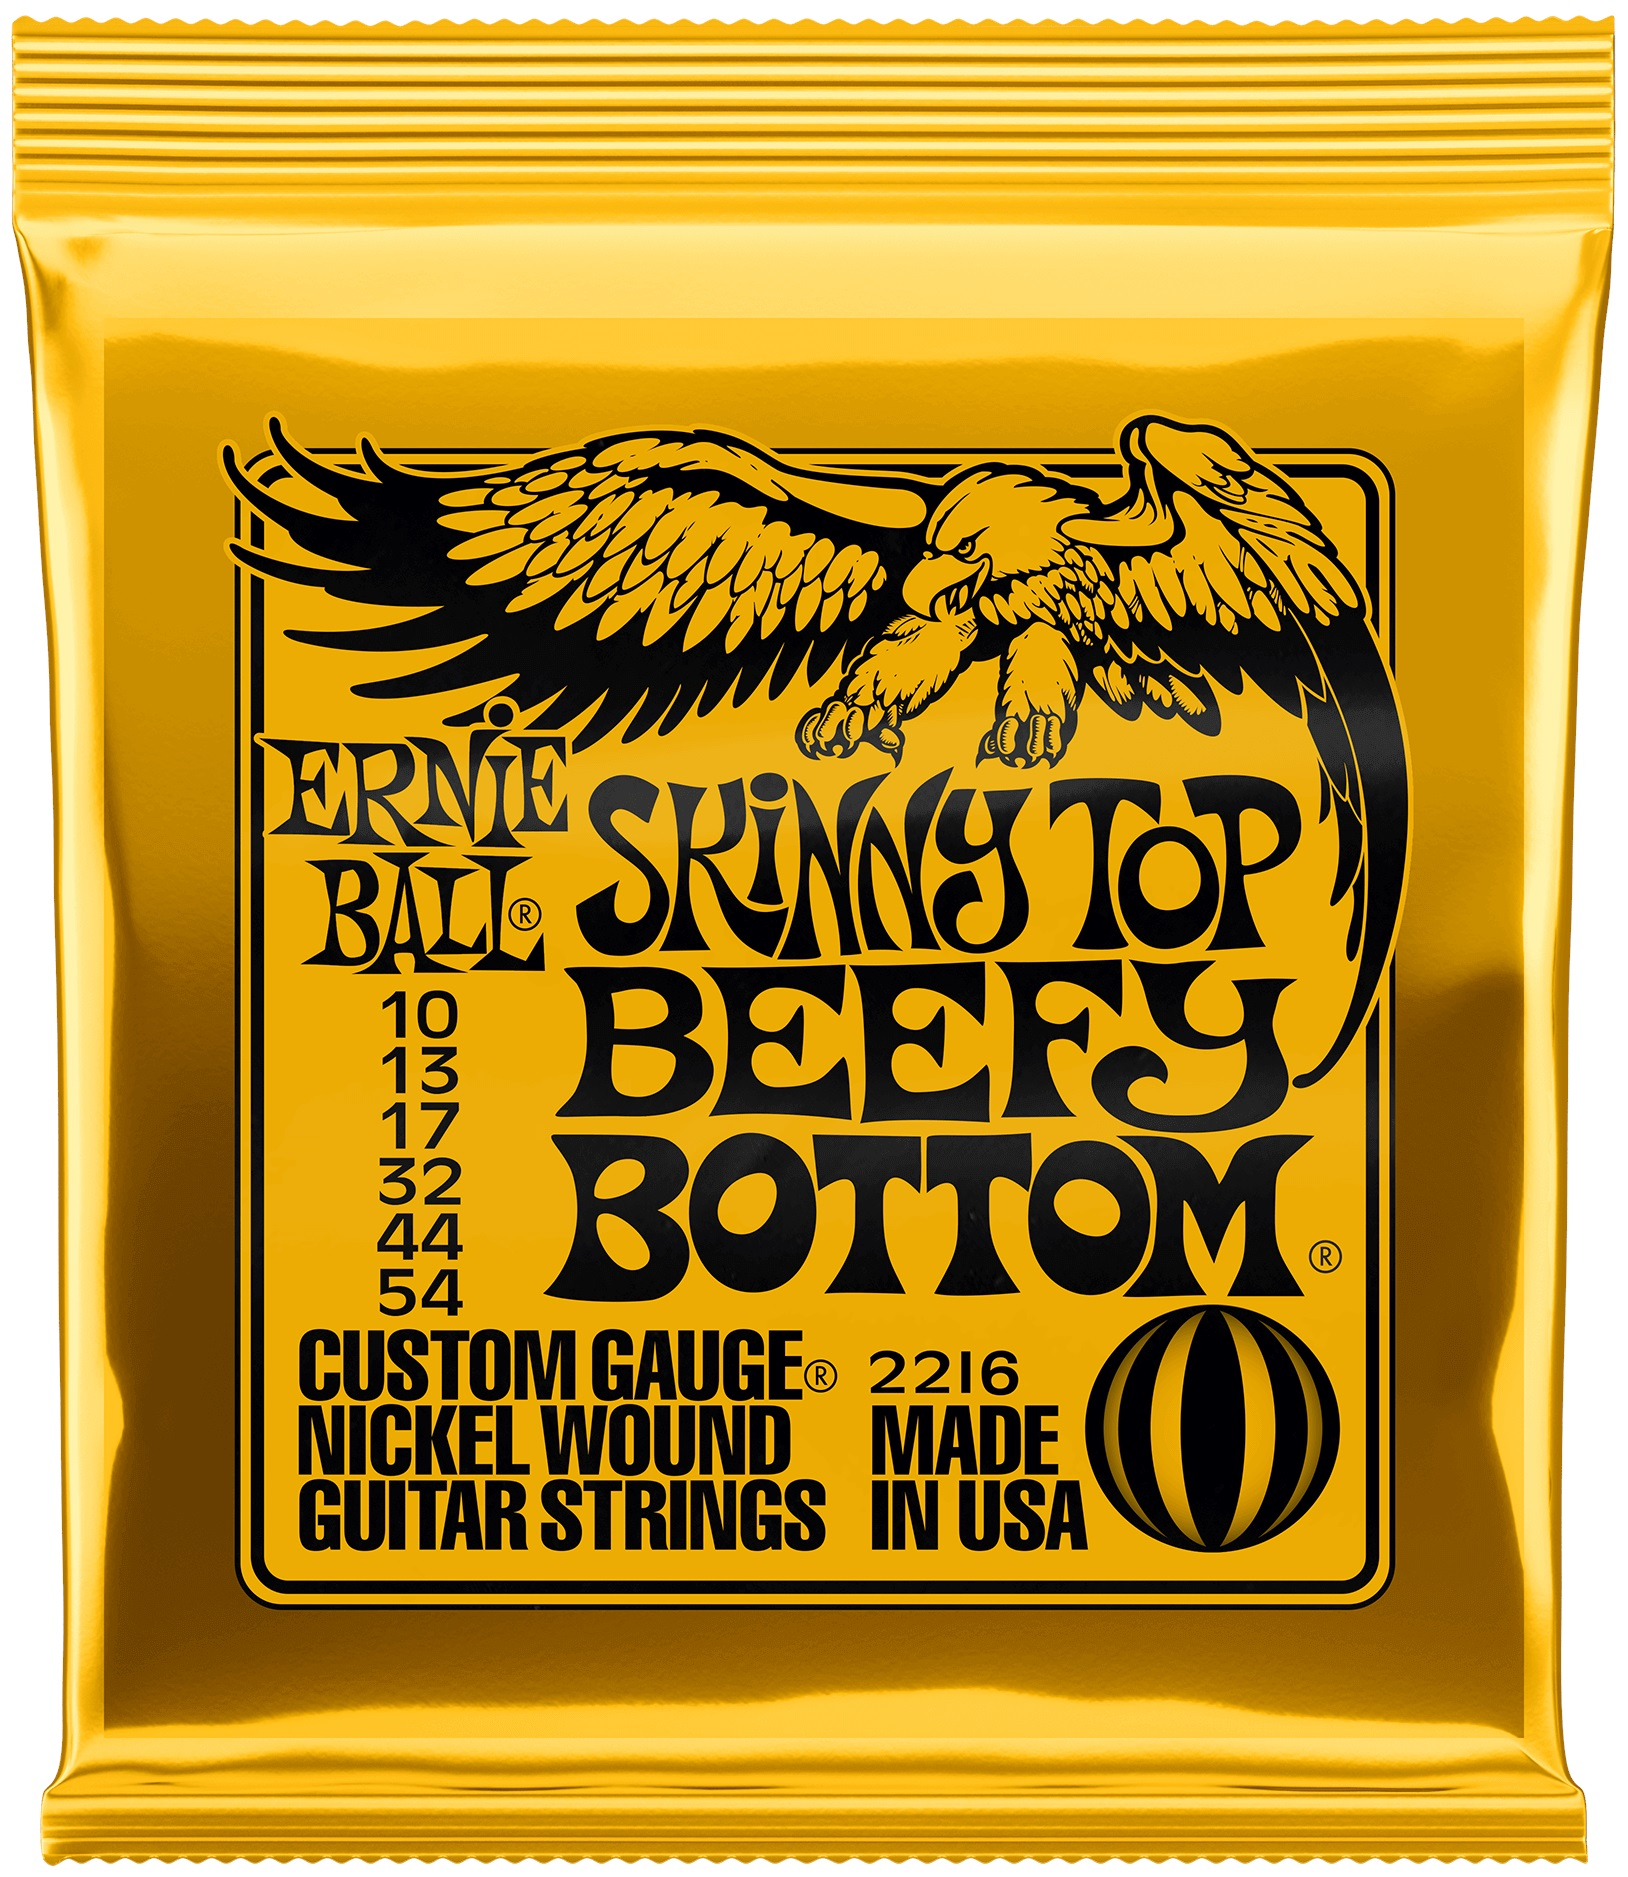 Ernie Ball Nickel Wound Skinny Top Beefy Bottom